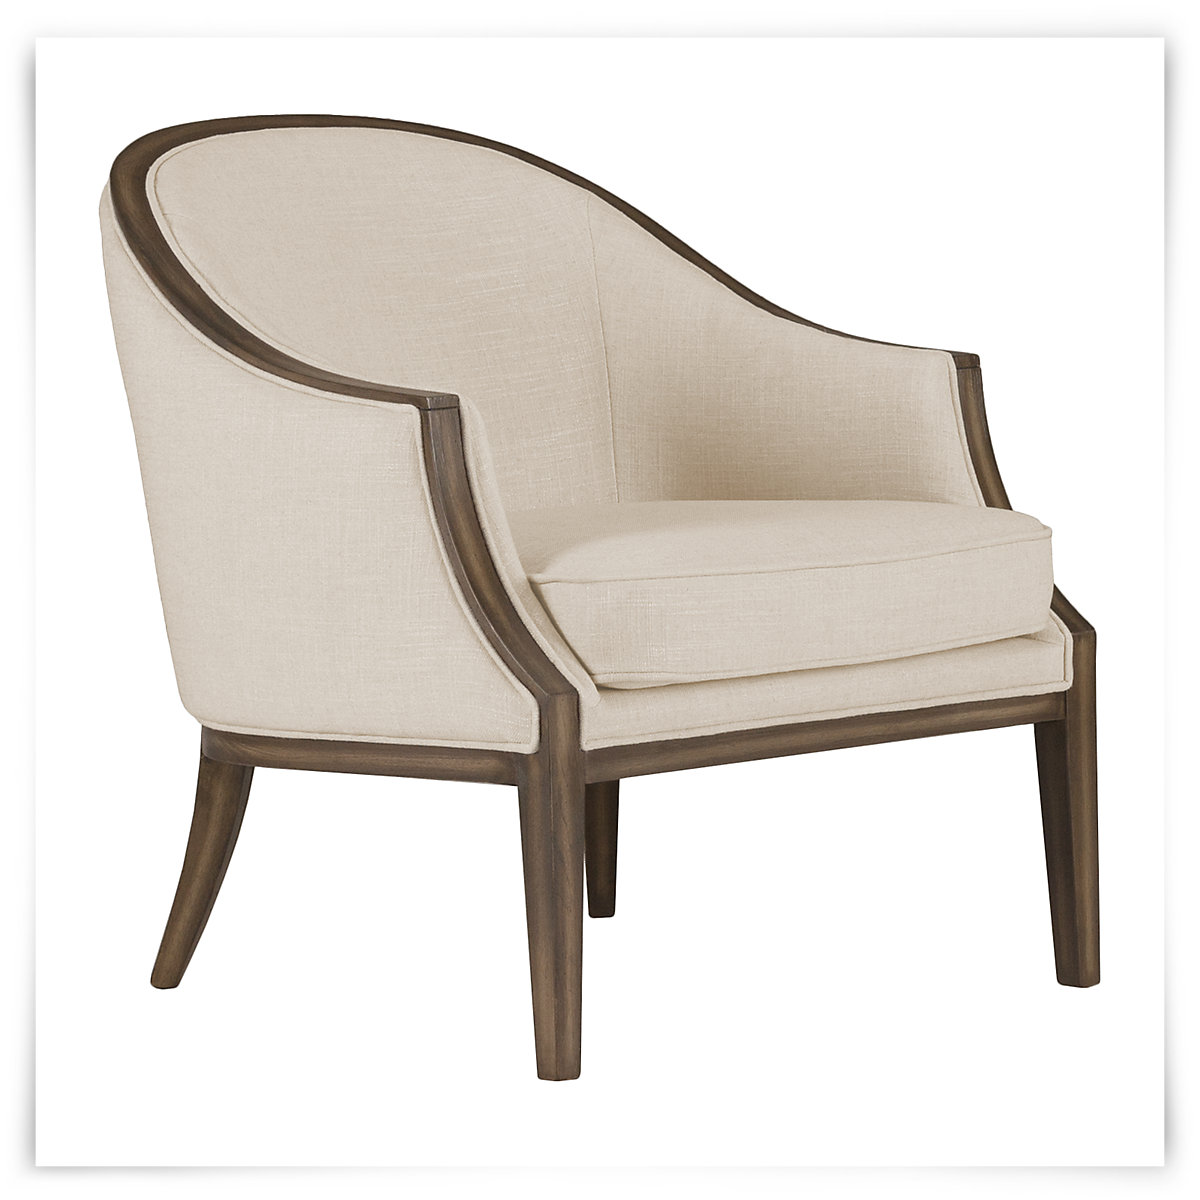 City furniture kensie beige fabric accent chair for Accent furniture